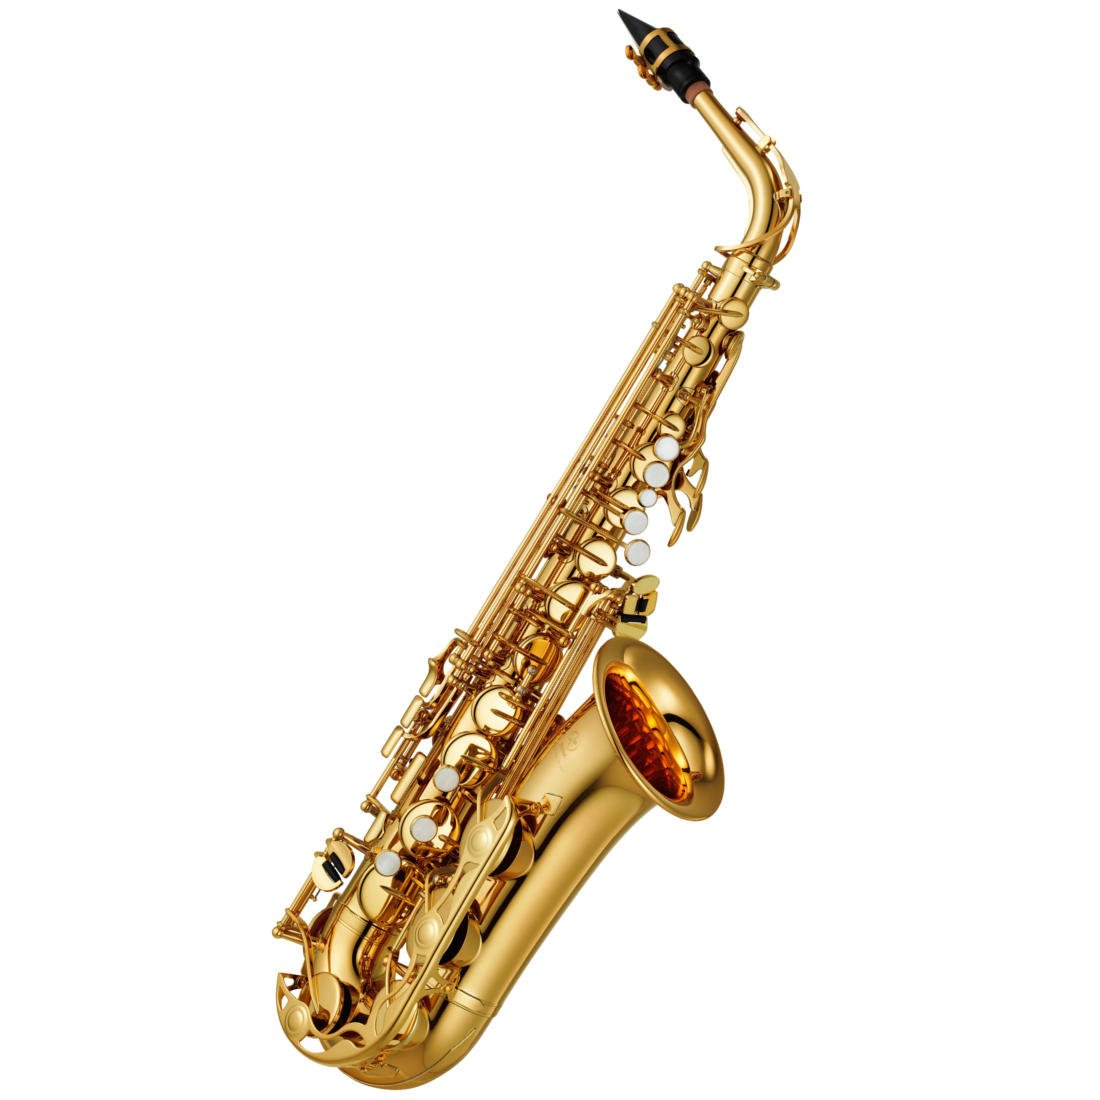 This image is a saxophone, one of the most well-known instruments used in Marching Band.